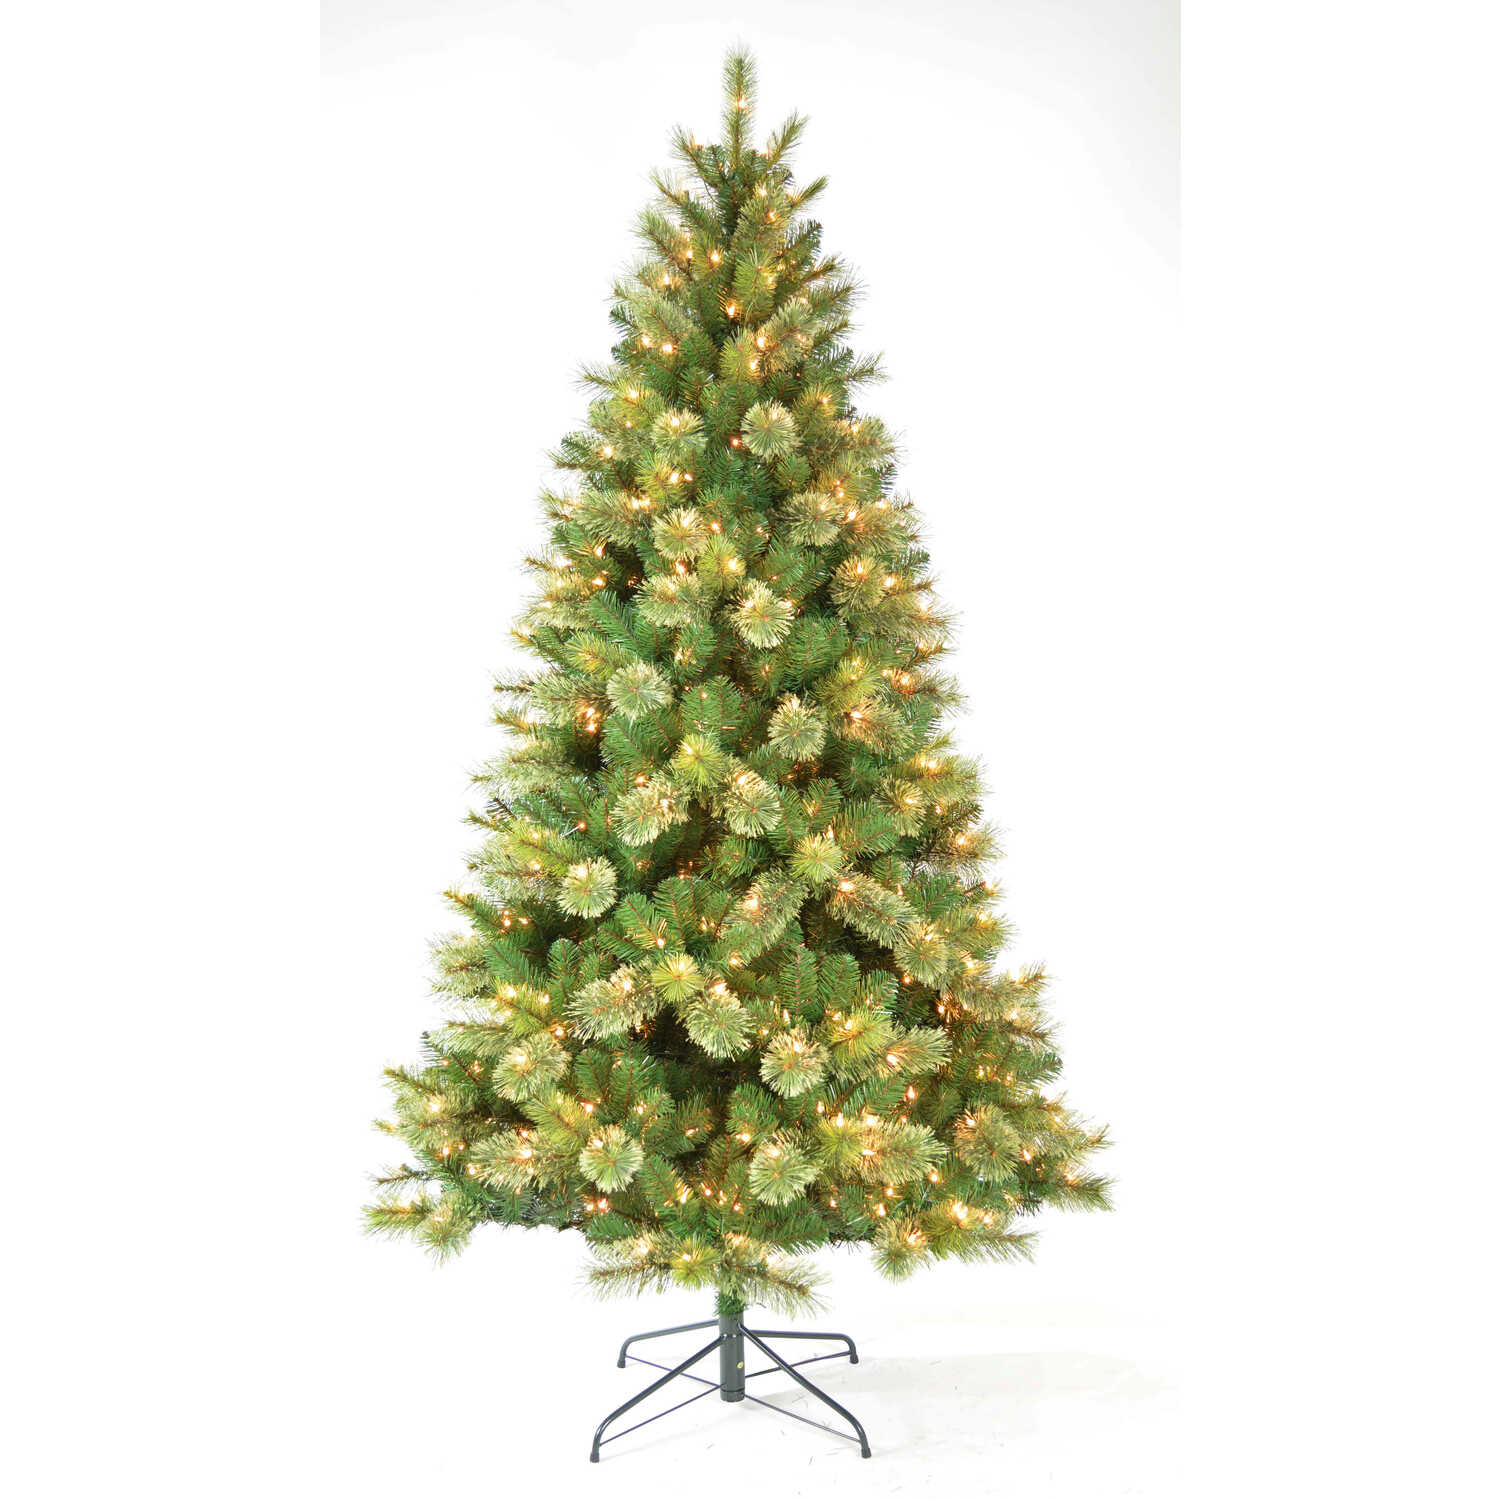 j j seasonal multicolored 7 12 ft concord artificial tree 600